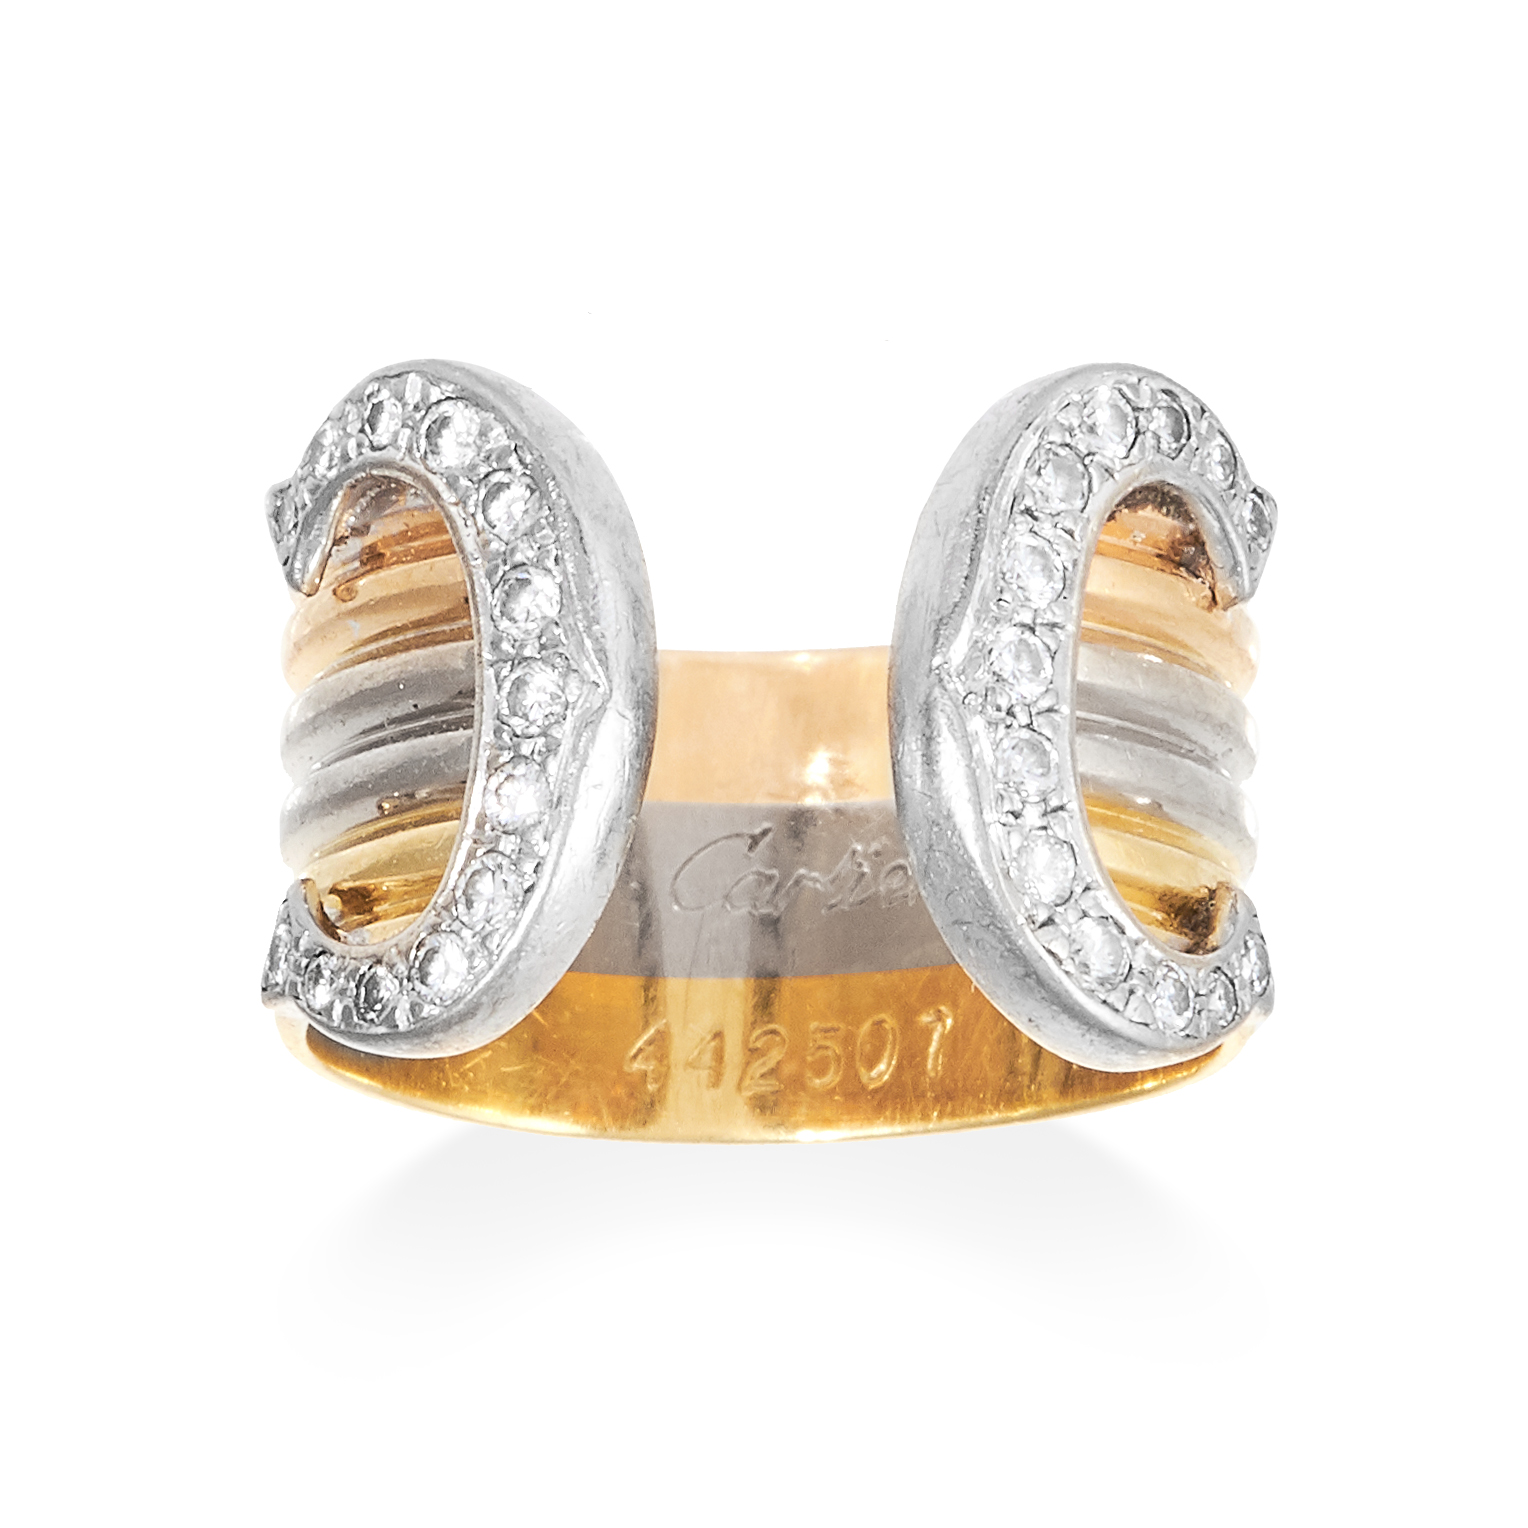 A C DE CARTIER DIAMOND RING, CARTIER in 18ct yellow, white and rose gold, designed as a three colour